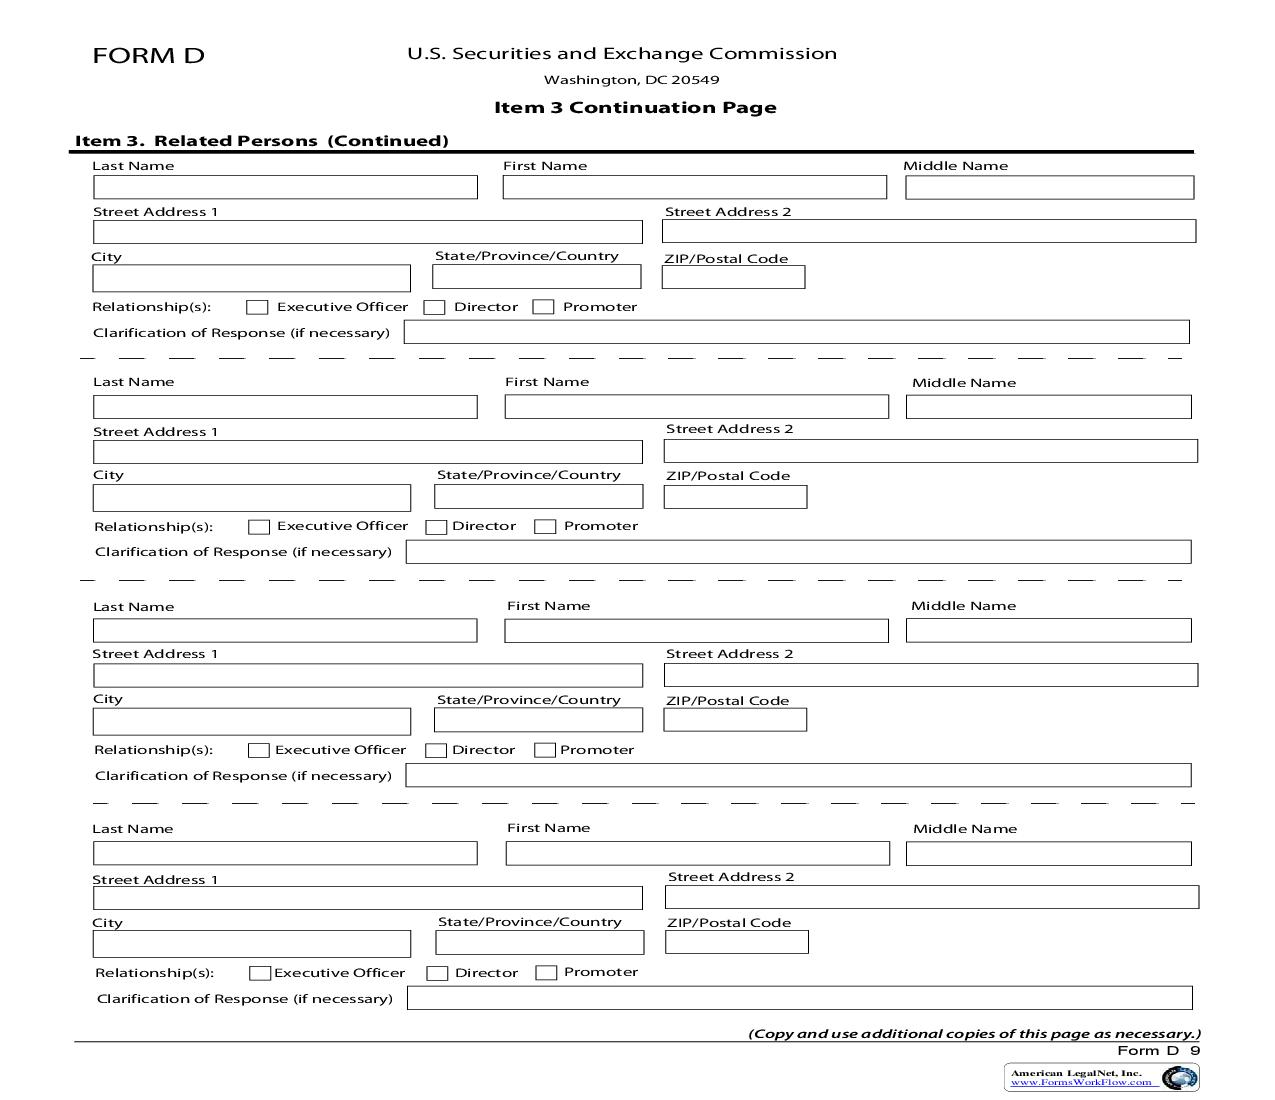 Form D Item 3 Continuation Page Related Persons (Continued) {D} | Pdf Fpdf Doc Docx | Official Federal Forms